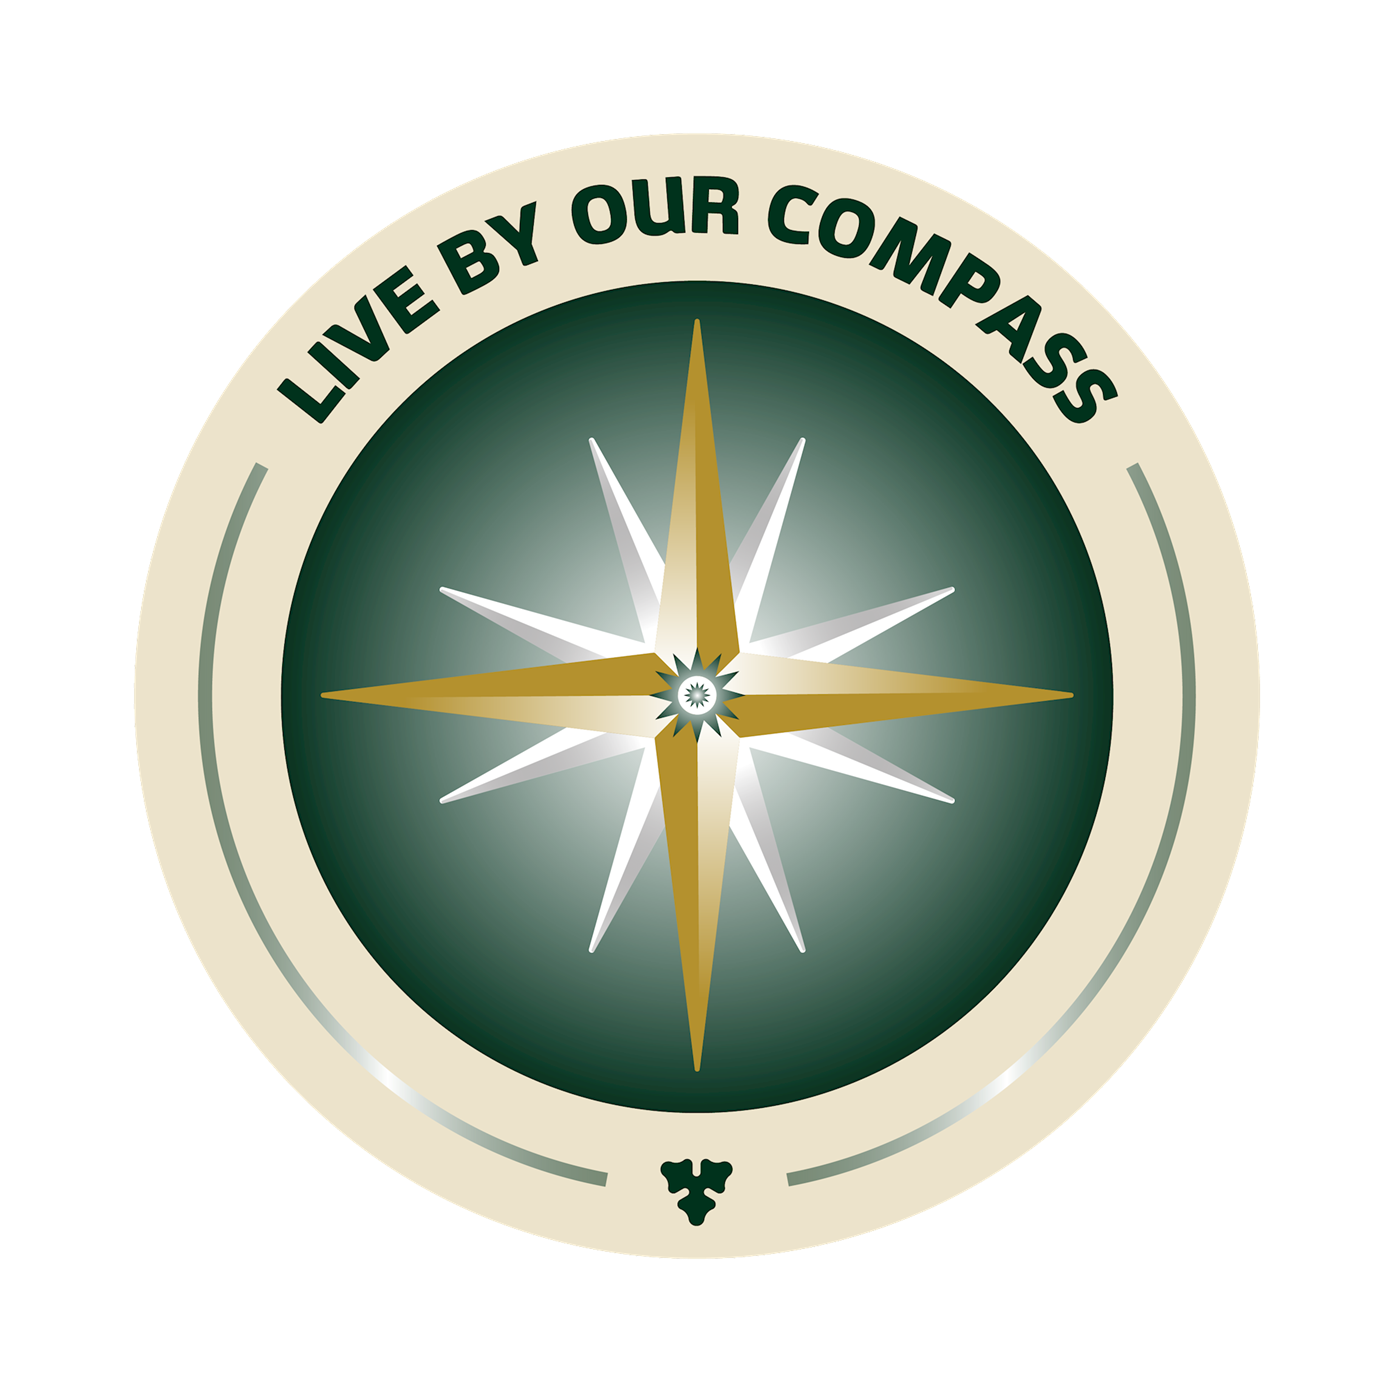 Who we are » Corporate Governance » Living by Our Compass